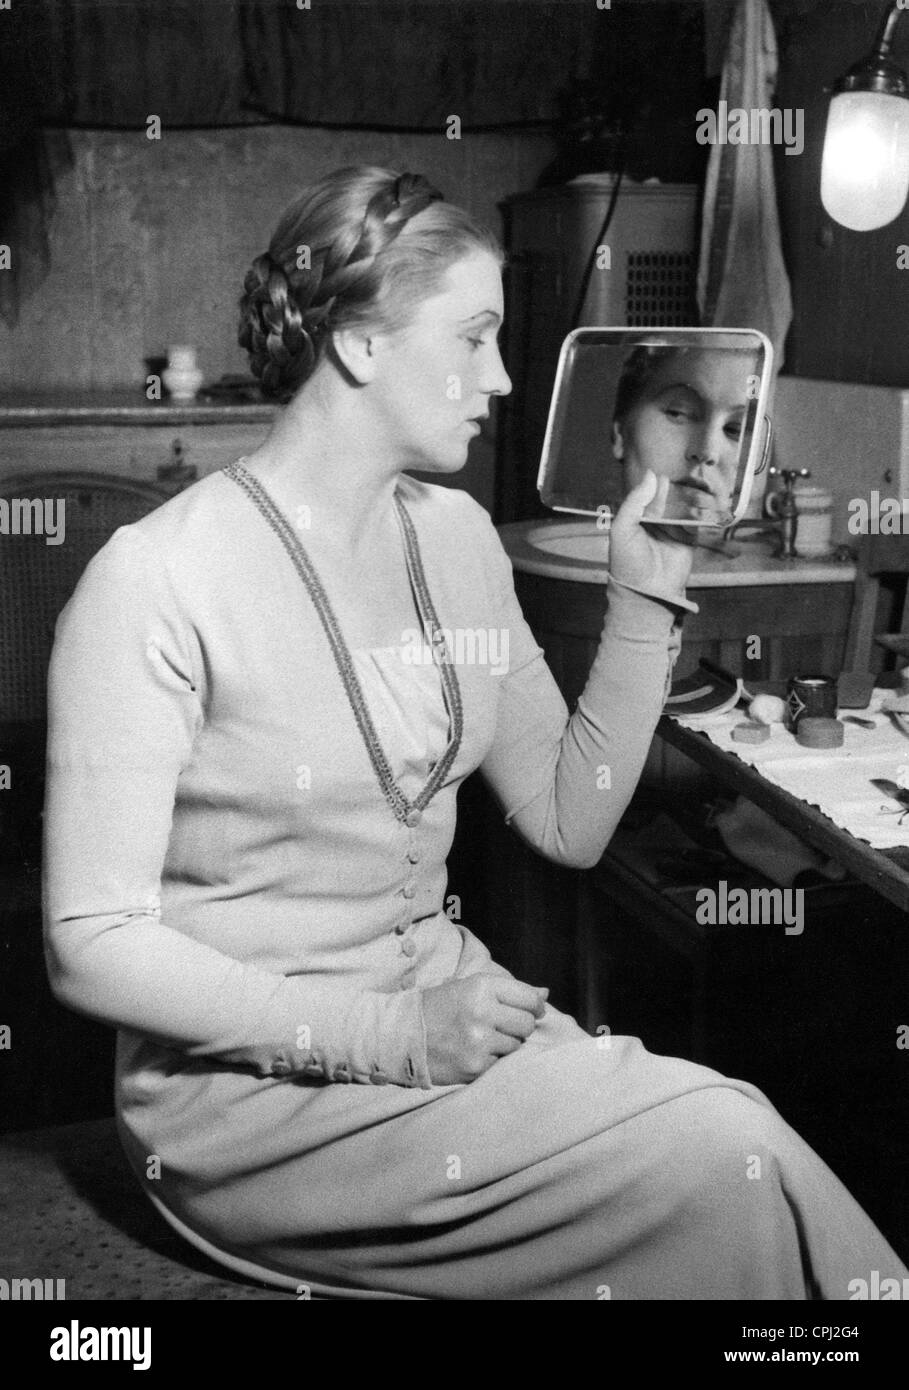 Kaethe Gold in 'Faust', 1934 - Stock Image